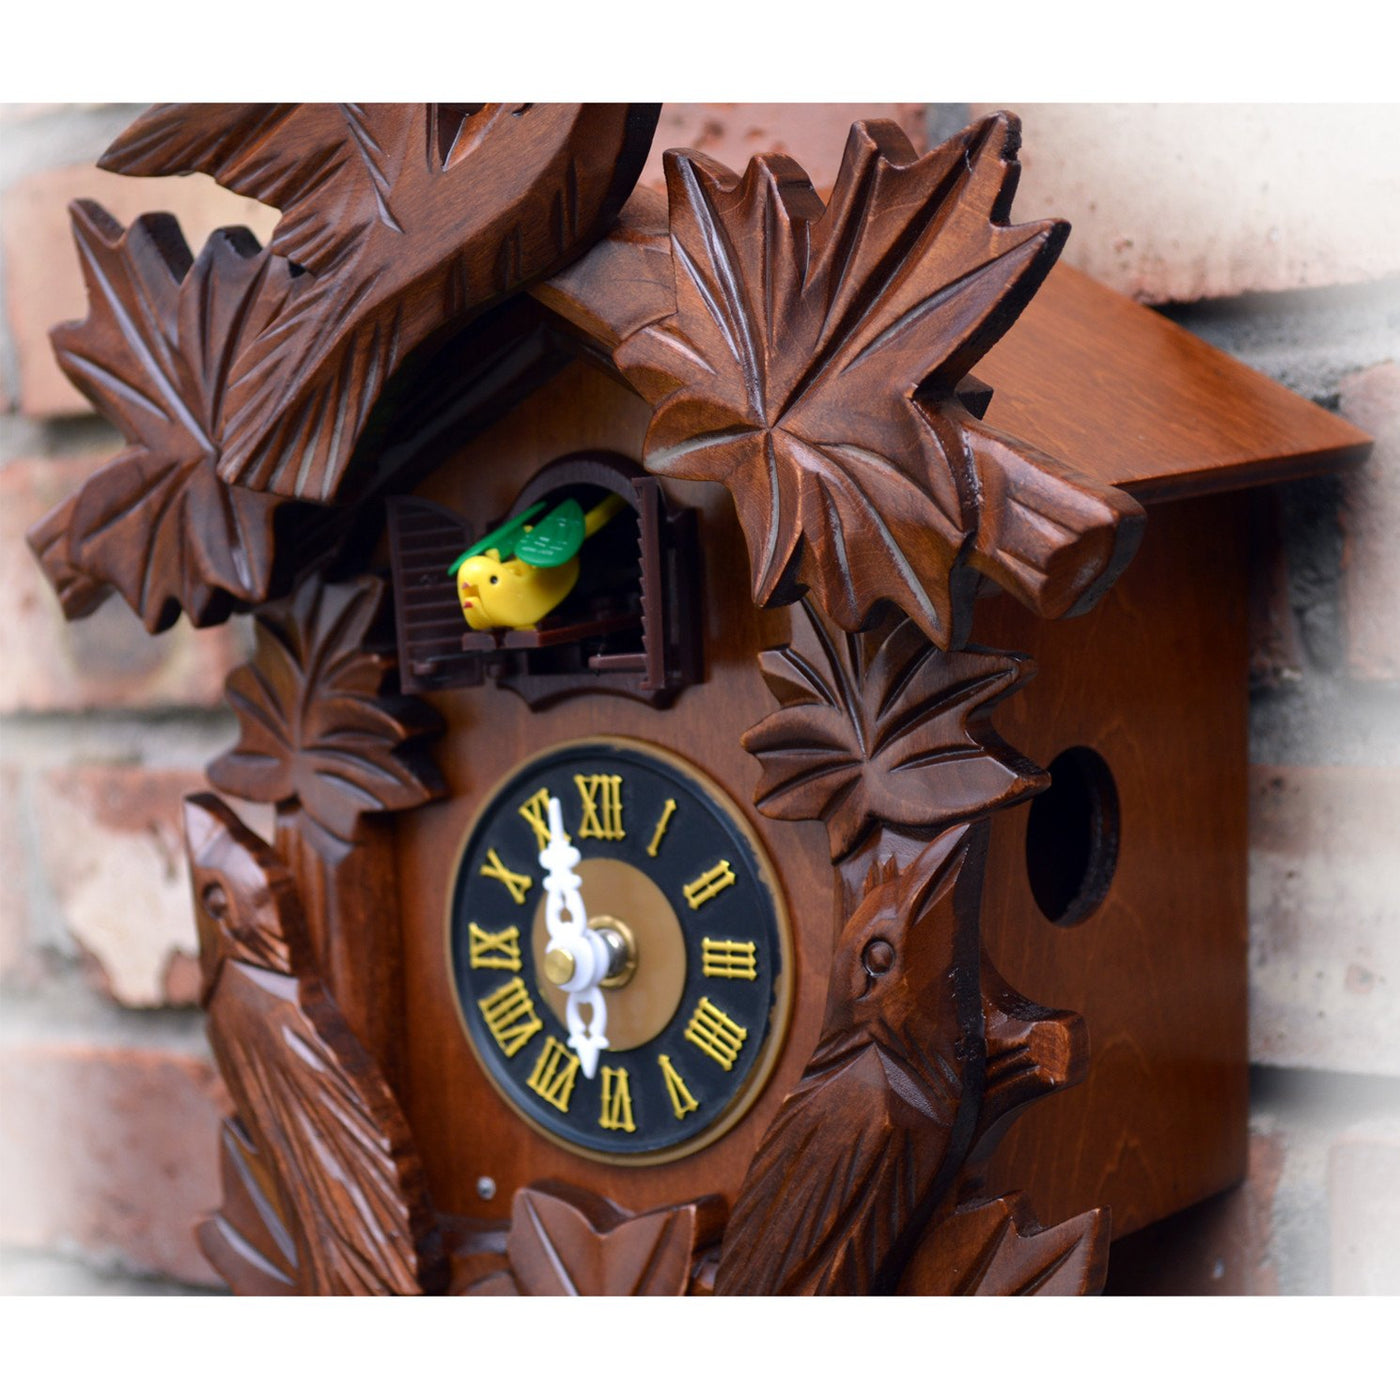 Cuckoo Clock With Wood Carving Birds Chirping On Hour 17